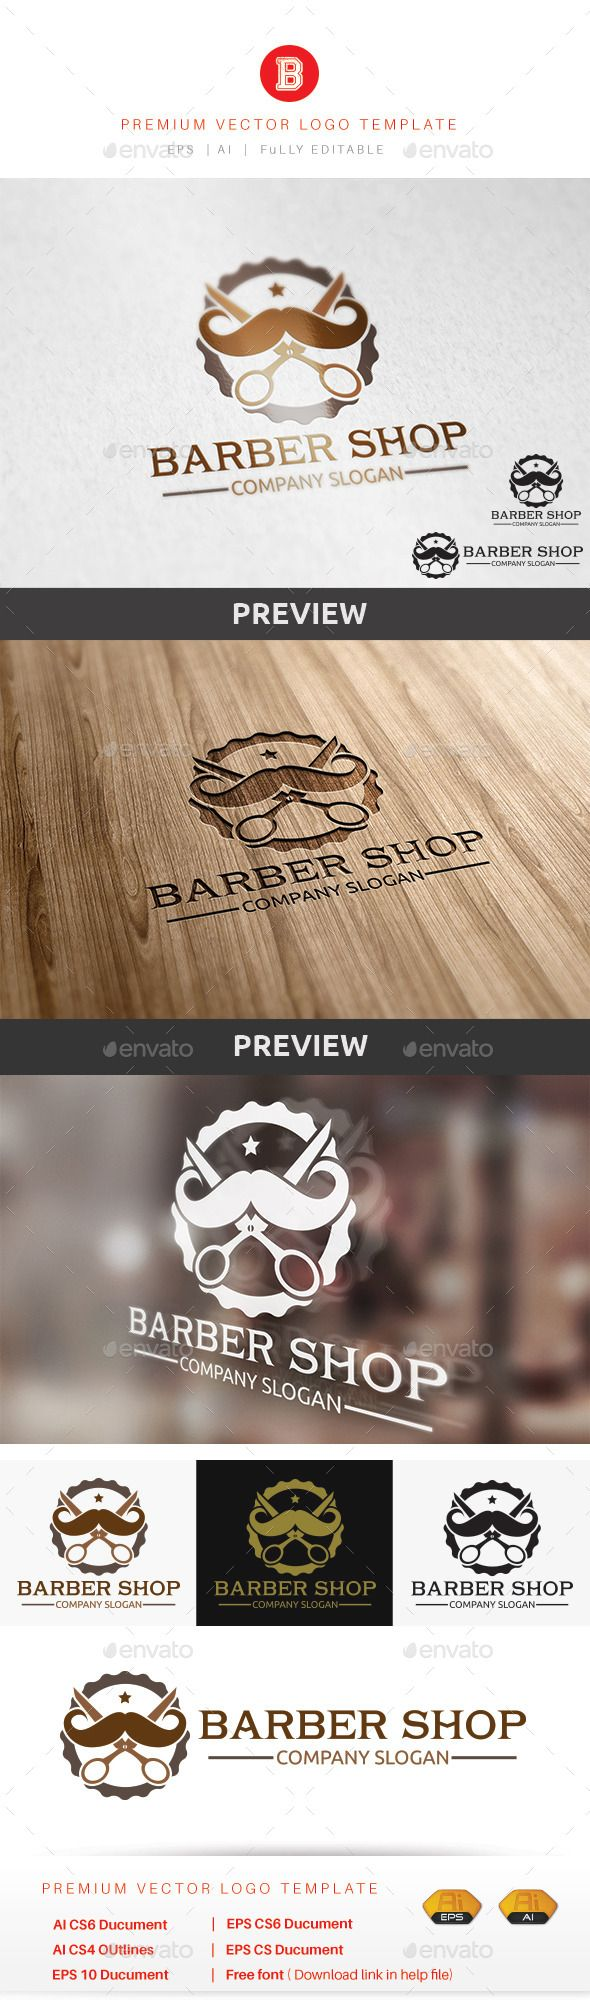 Barber Shop - Logo Design Template Vector #logotype Download it here: http://graphicriver.net/item/barber-shop/9454058?s_rank=481?ref=nesto